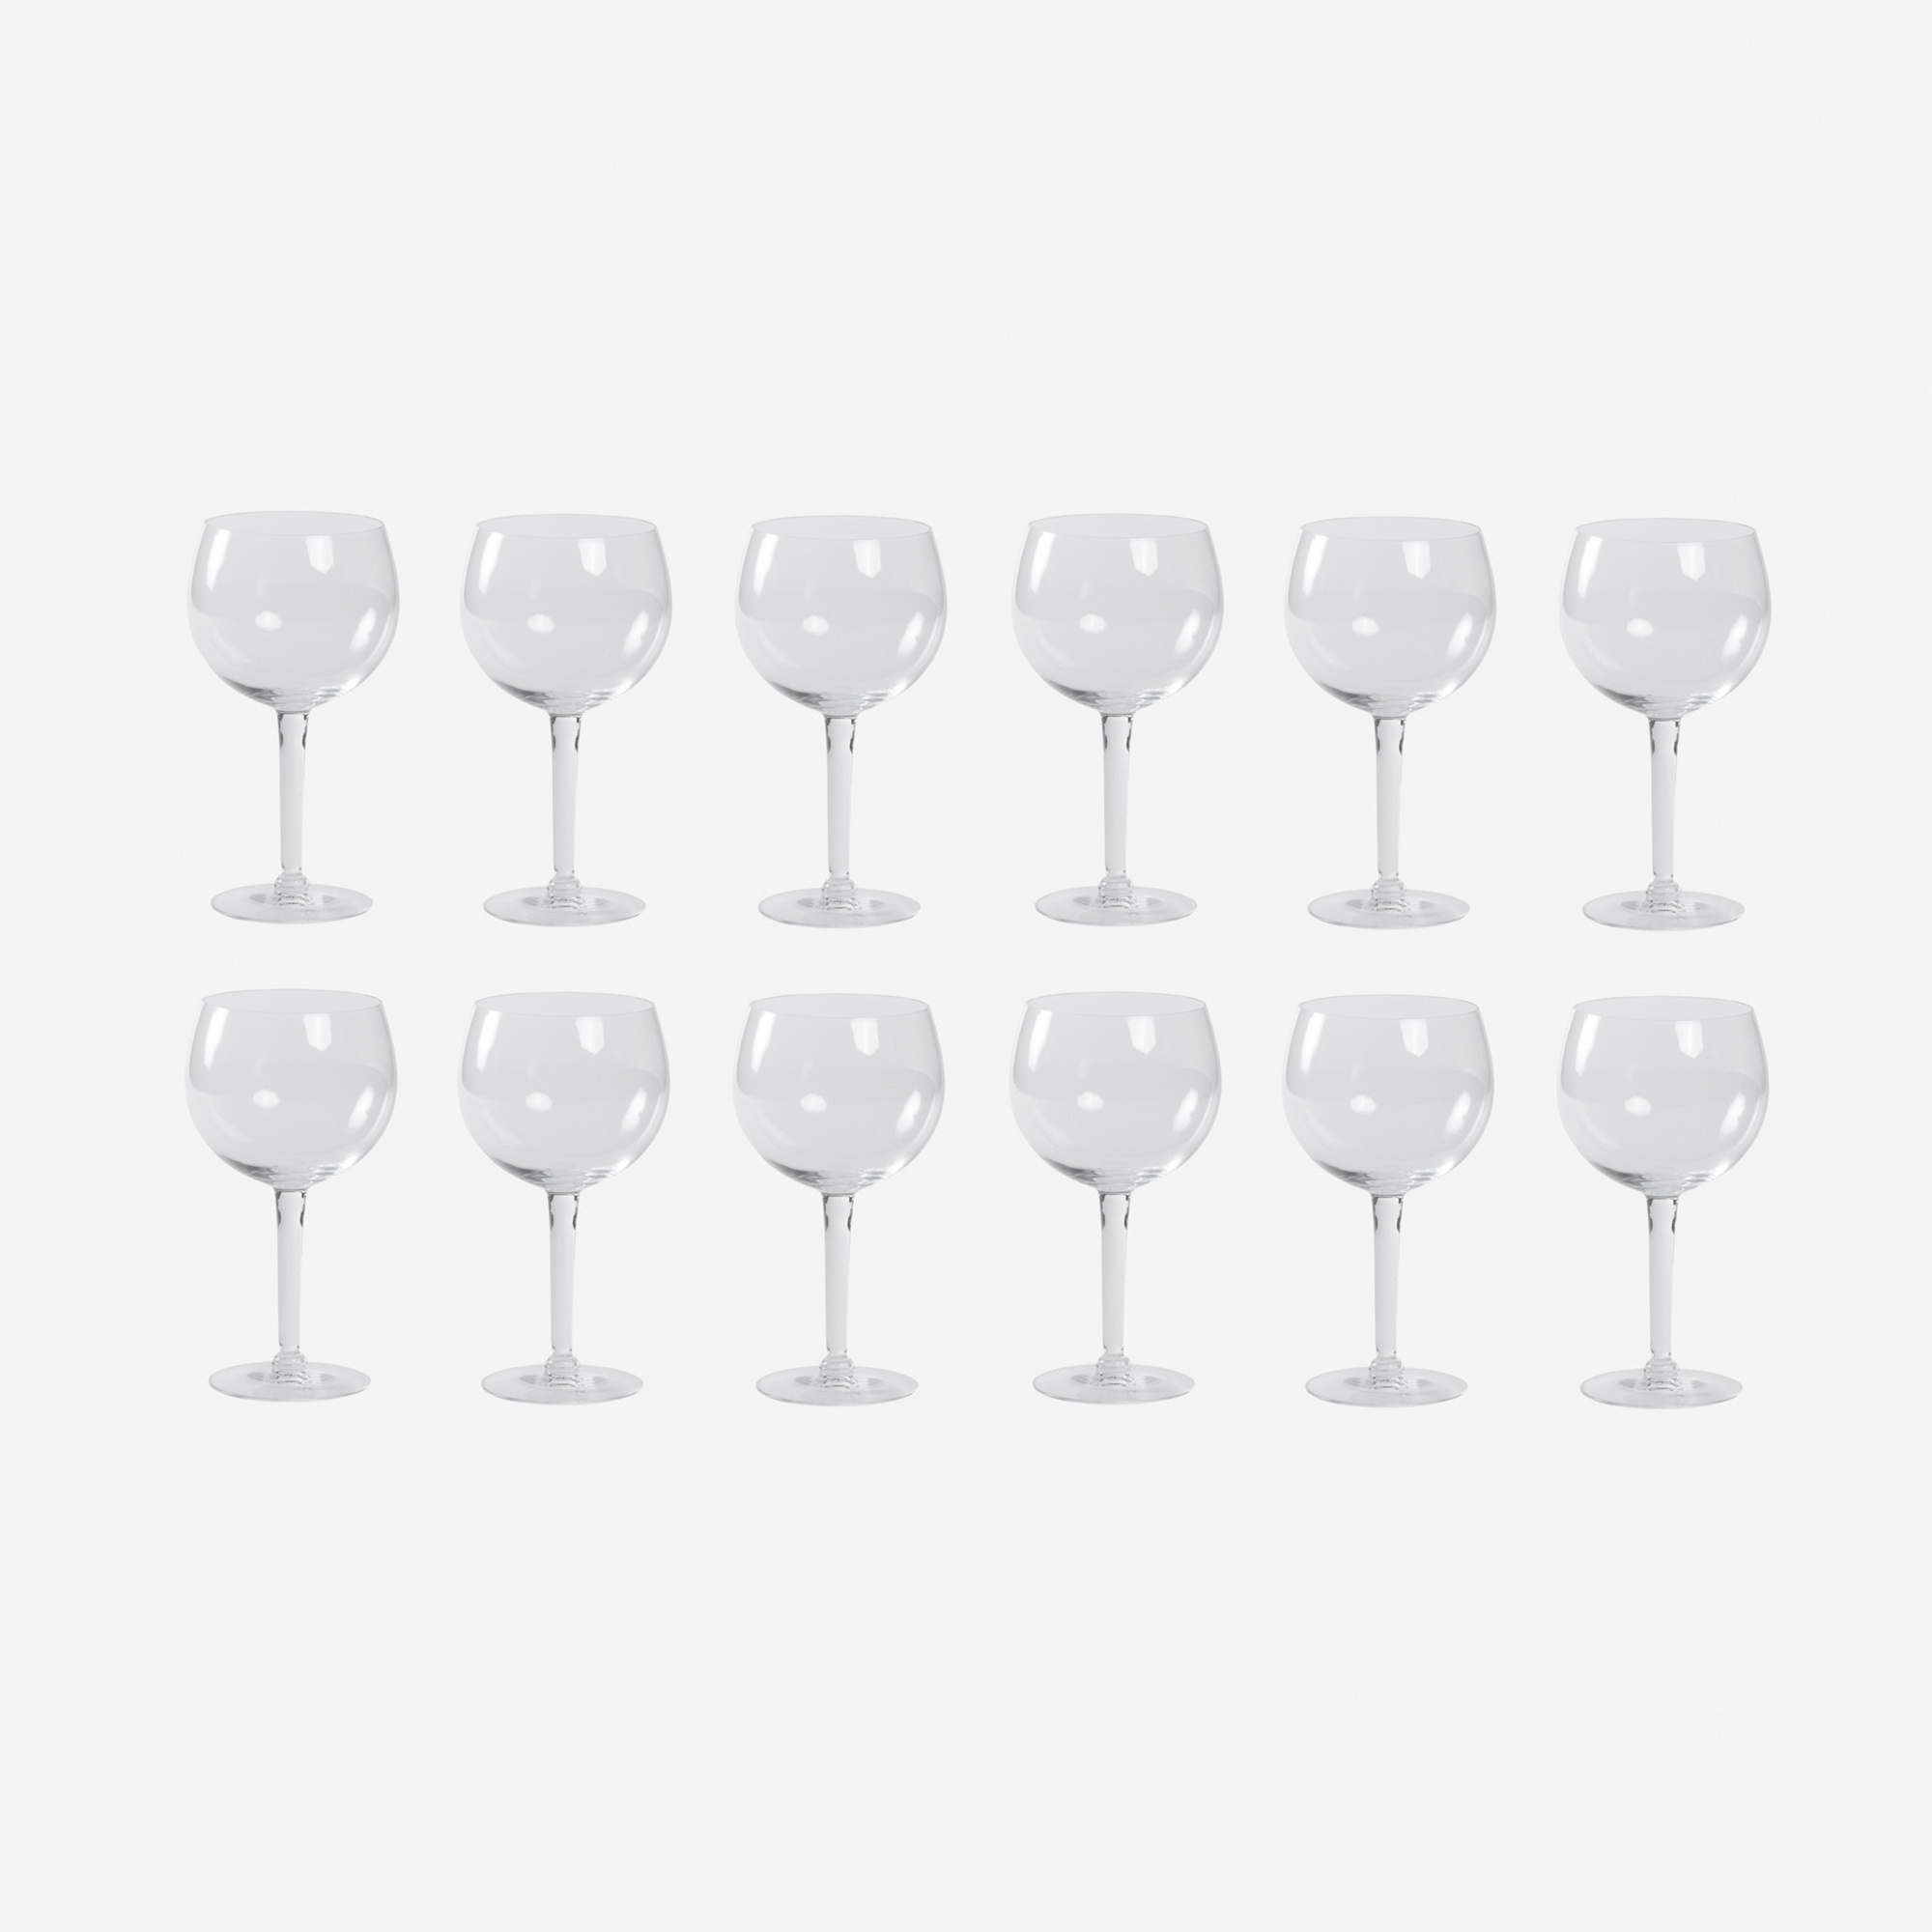 448: Garth and Ada Louise Huxtable / Red Wine glasses from The Four Seasons, set of twelve (1 of 1)